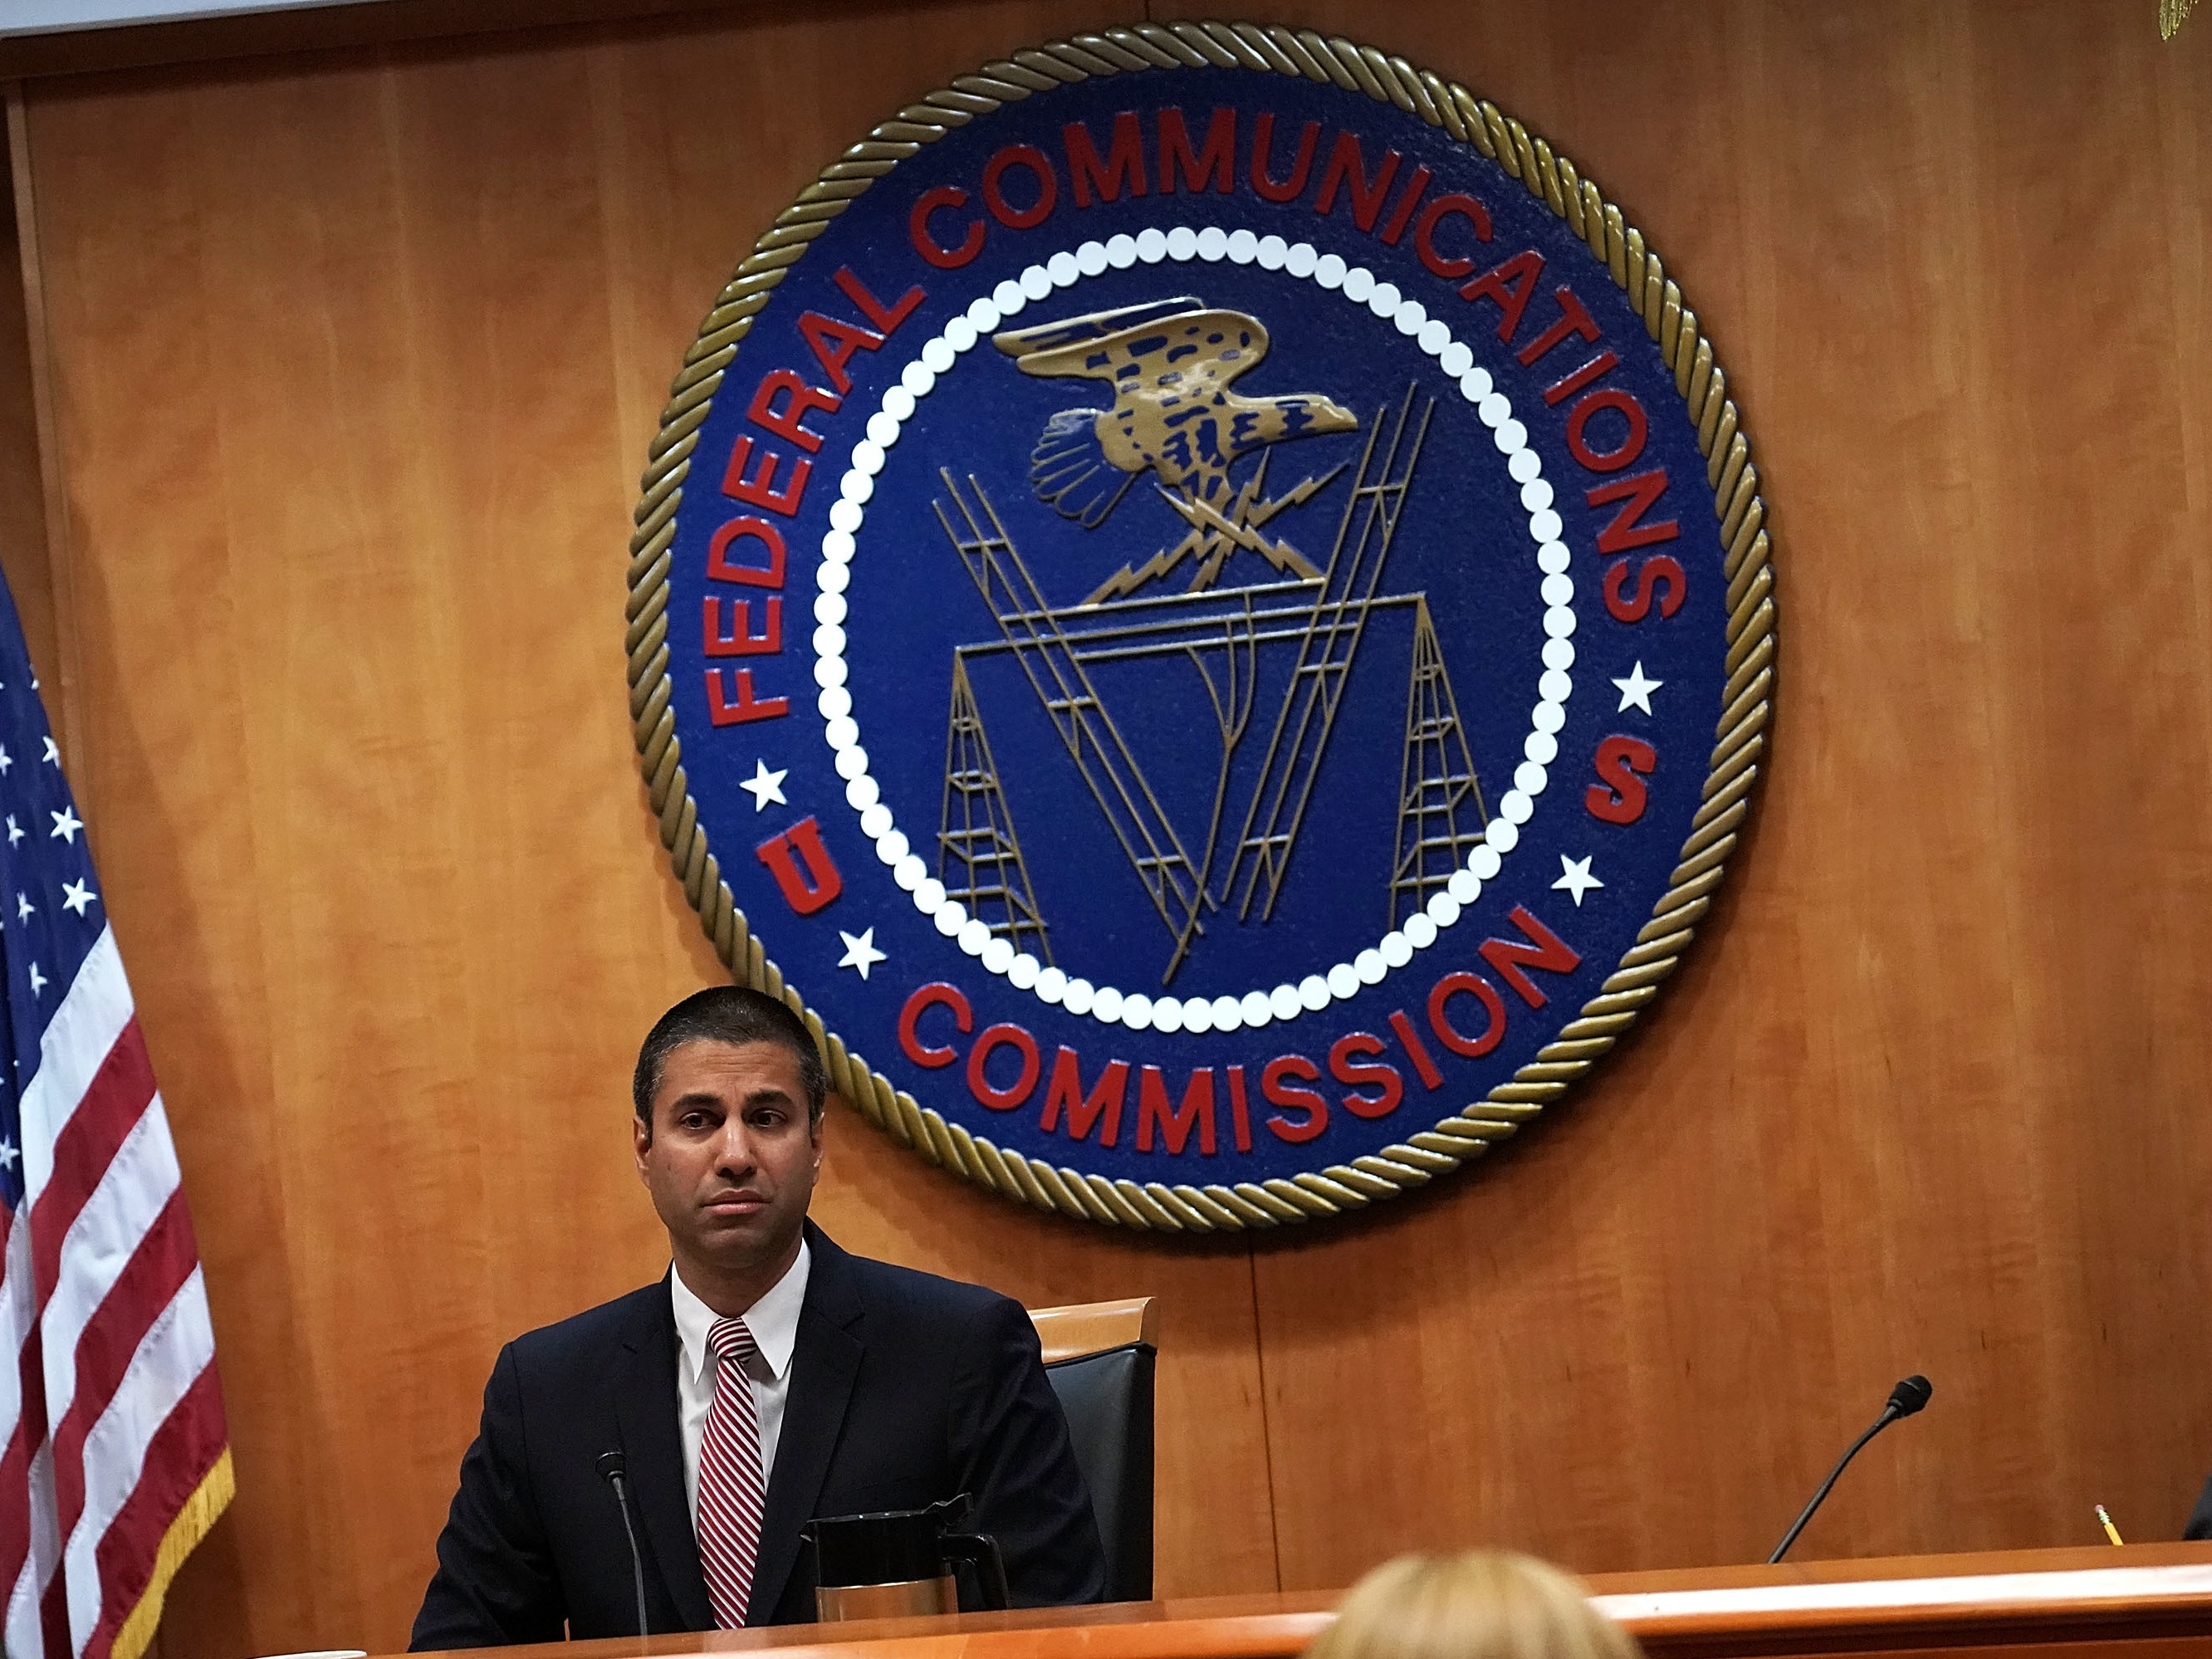 Federal Communications Commission Chairman Ajit Pai led a vote to repeal Obama-era